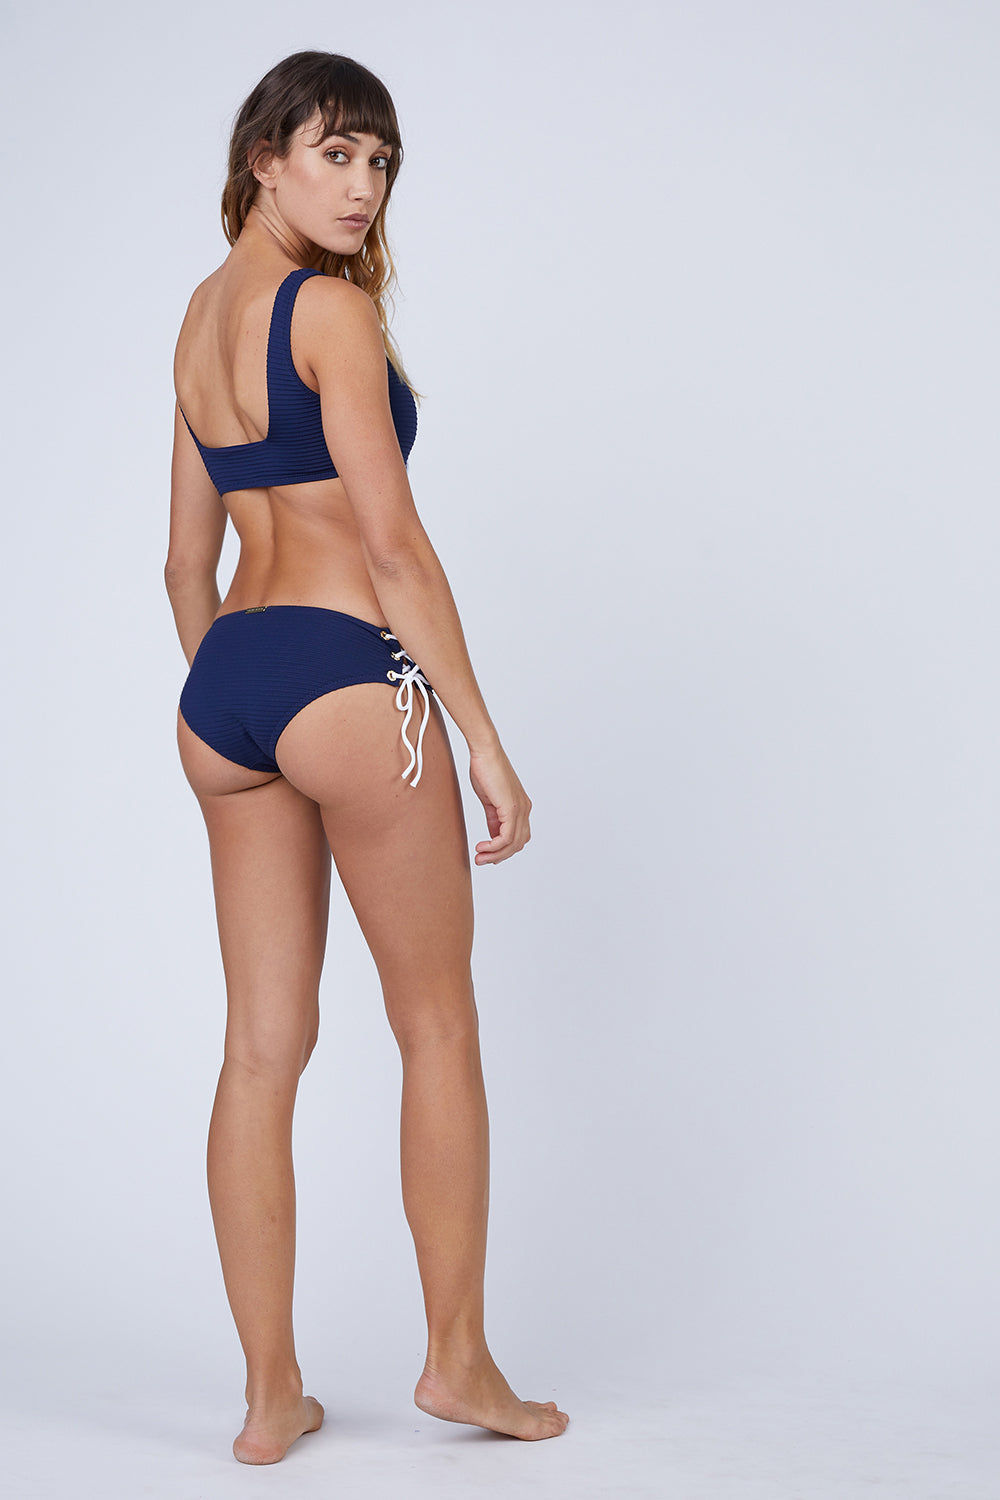 HEIDI KLEIN Square Ribbed Lace Up Front Bikini Top - Navy Blue Bikini Top | Navy Blue| Heidi Klein Square Ribbed Lace Up Front Bikini Top - Navy Blue Features:  Fully lined in soft lining for ultimate comfort. Fine elastic and binding along under bust and back strap are delicate and lightly supportive. Soft side seam boning to enhance bust support. Wide neck strap and elasticated under bust is for additional comfort and support. Back View